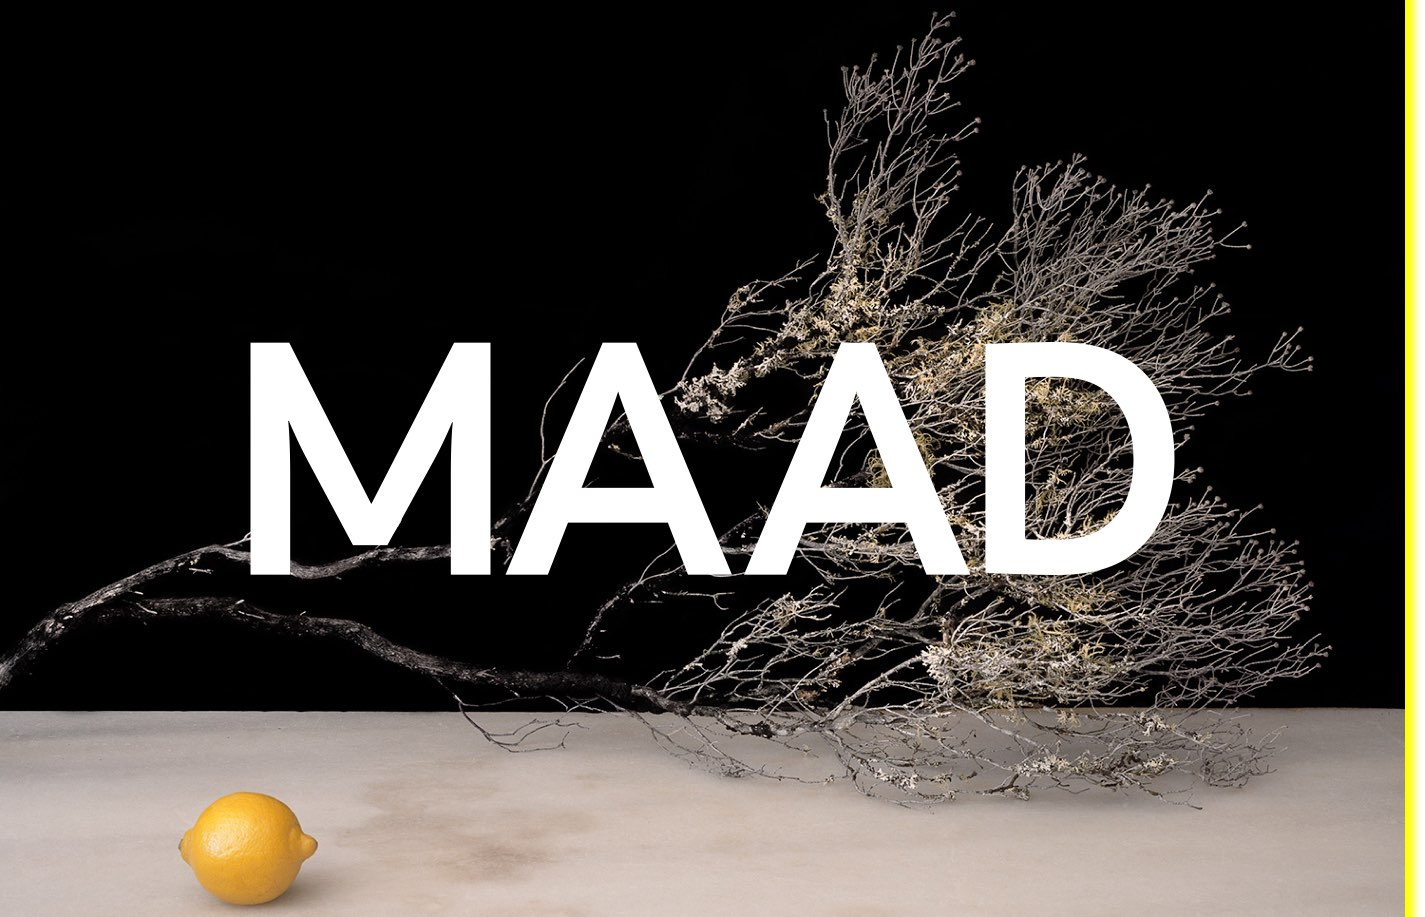 Screenshot of the website MAAD, featured on The Gallery, a curated collection of minimal websites